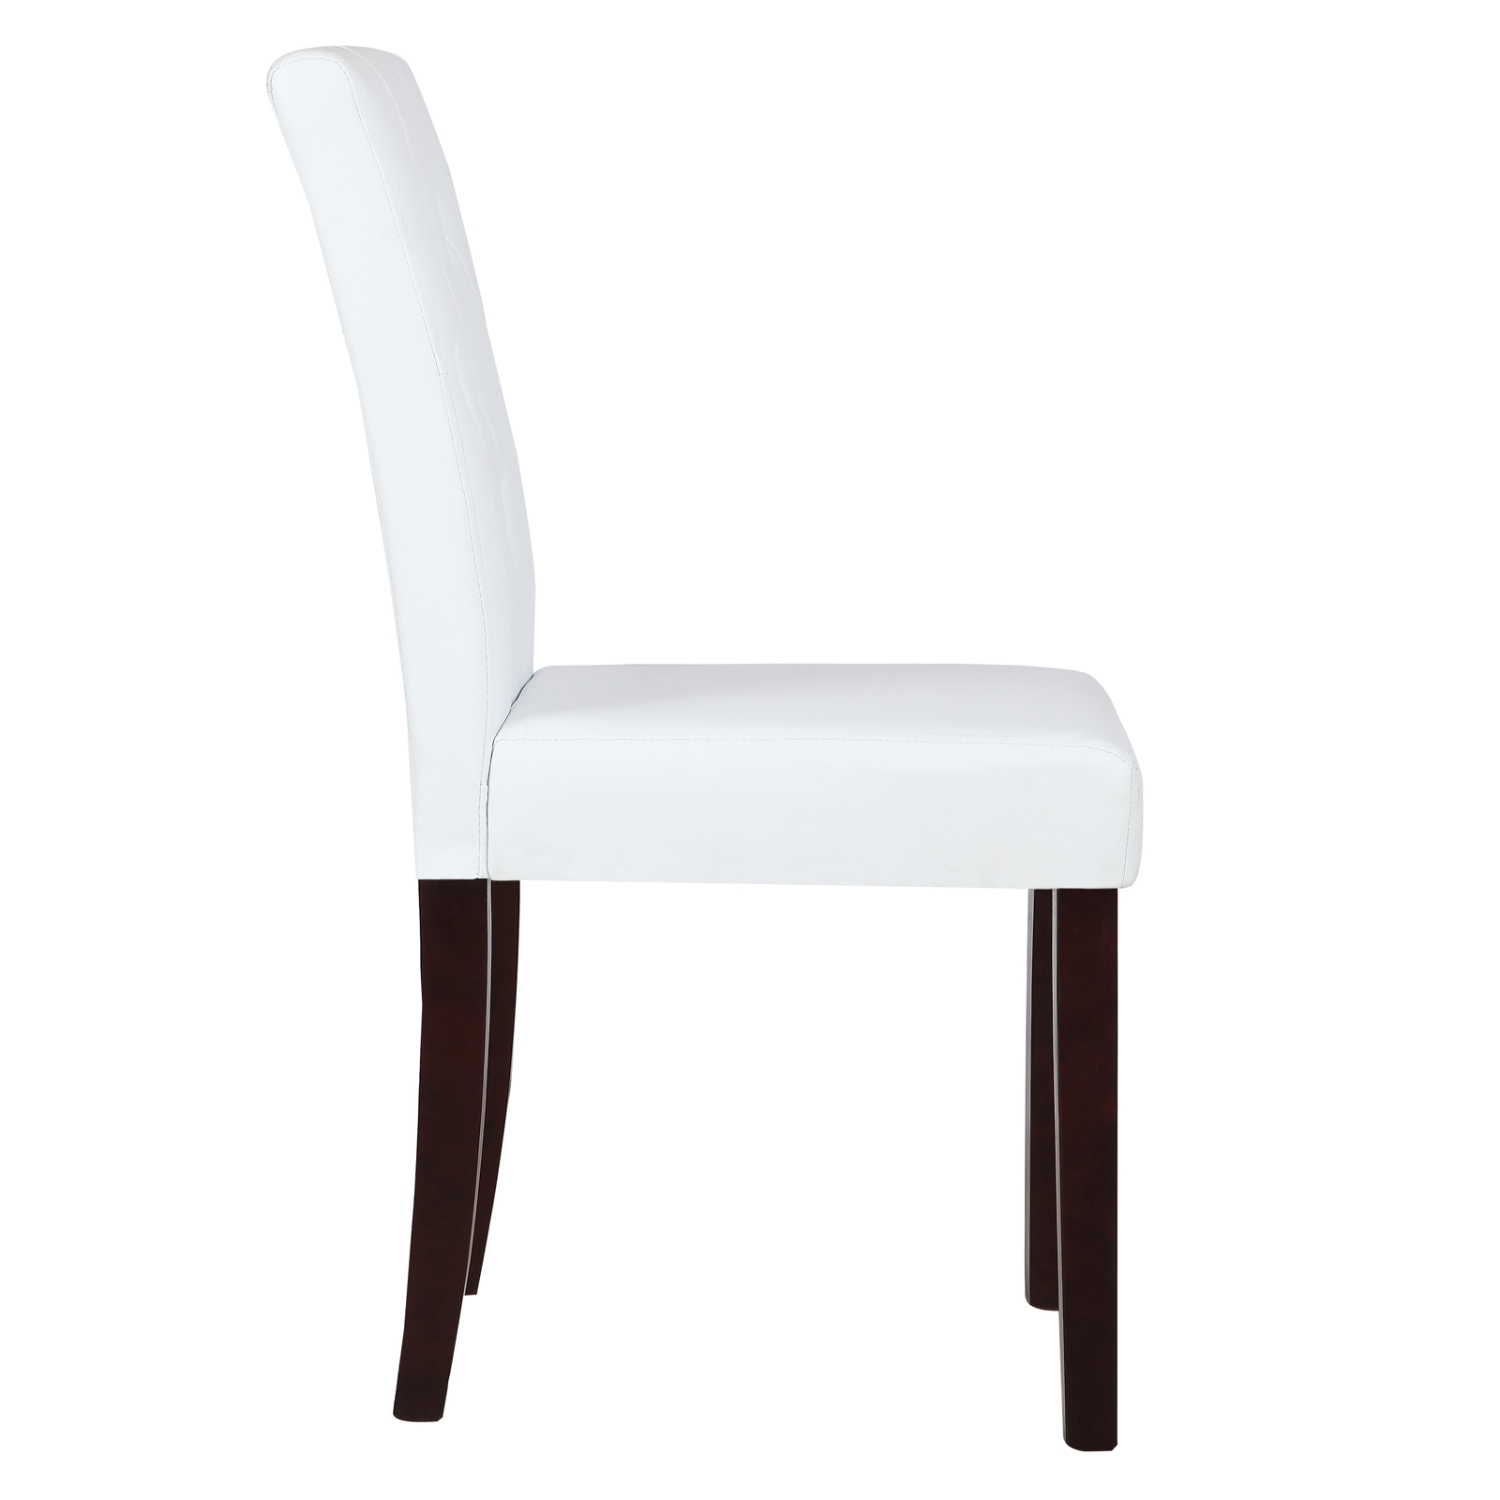 White Leather Dining Room Set: Set Of 2 Dining Chair White Leather Kitchen Dinette With